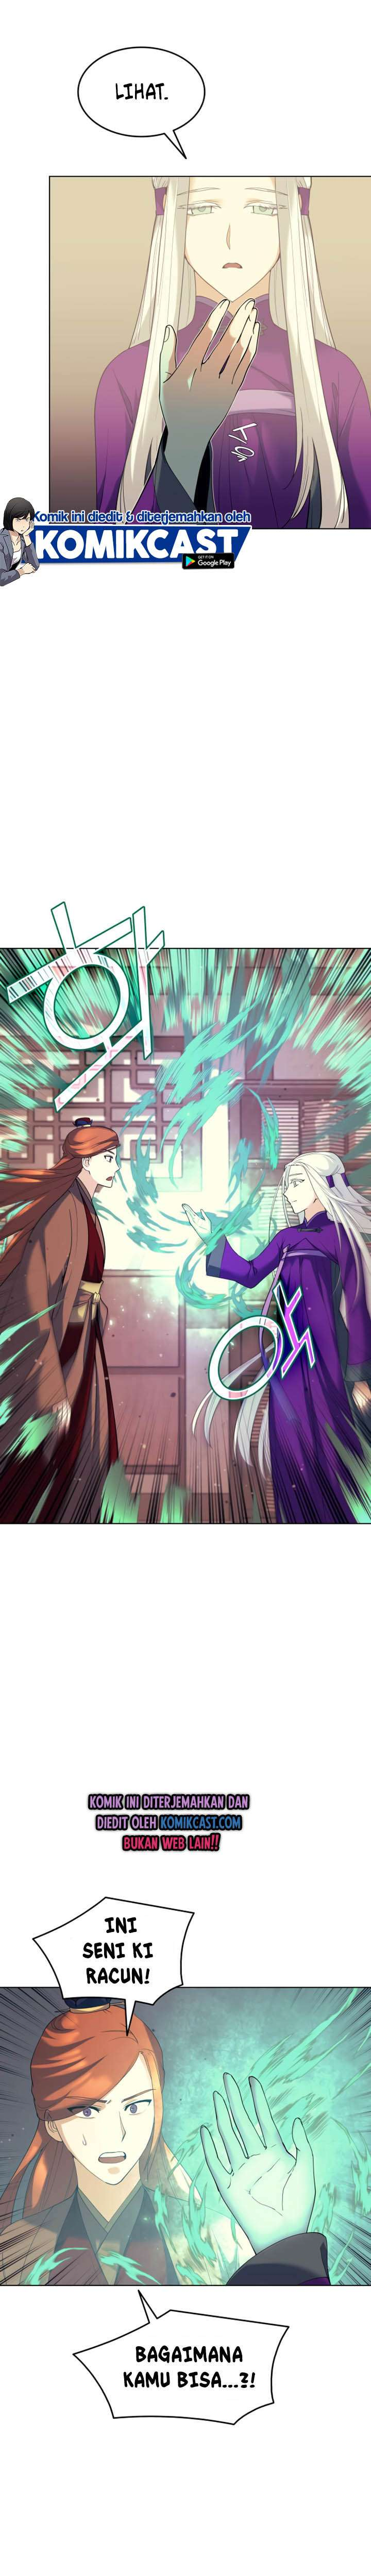 Tale of a Scribe Who Retires to the Countryside Chapter 53 Bahasa Indonesia page 15